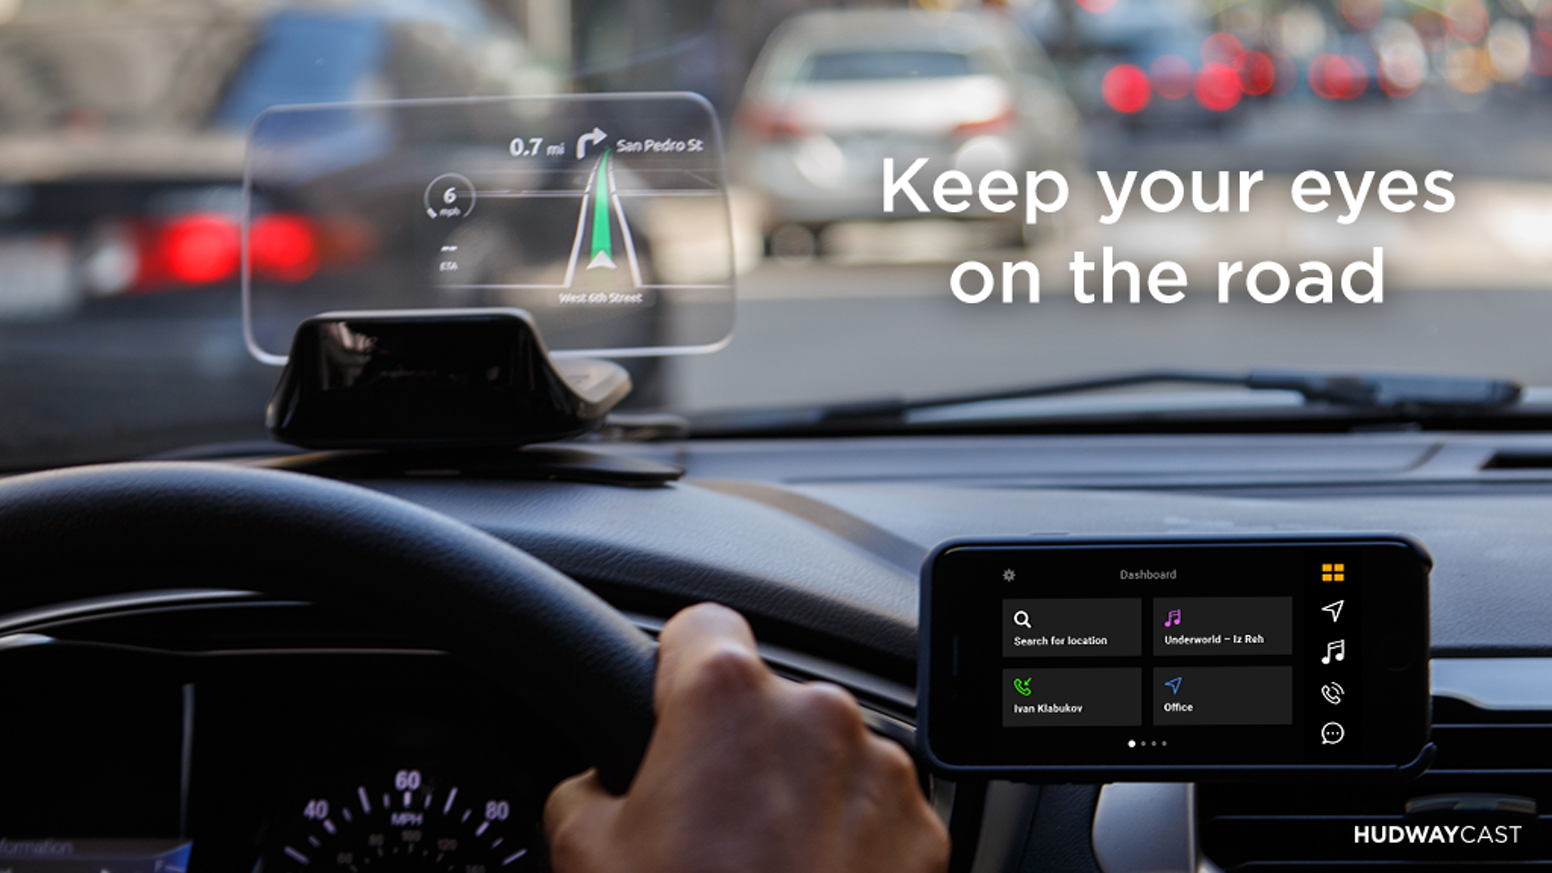 A head-up display (HUD) for your car to get directions, receive calls, texts and control your music while driving.